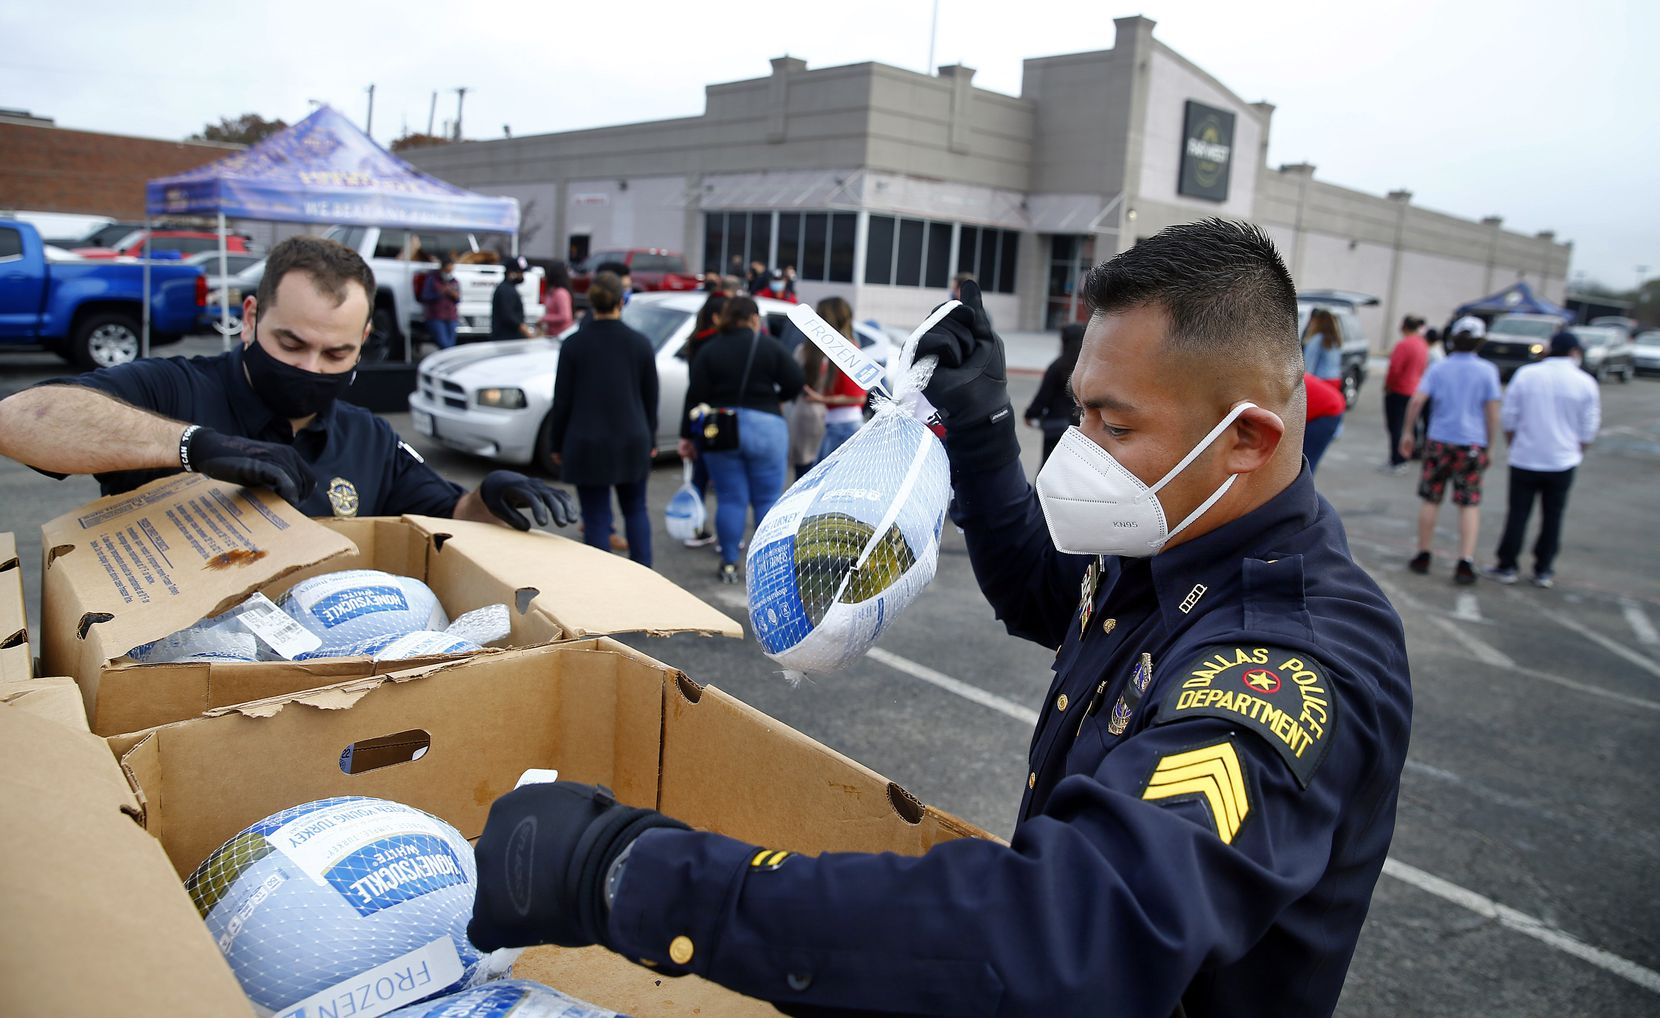 Dallas Police Department Unidos outreach team members Sgt. Eddie Reyes (right) and Lt. Stephen Williams unload frozen turkeys for volunteers from First United Bank, Hunger Busters and Canales Furniture during a Thanksgiving turkey handout in Pleasant Grove on Nov. 21. In the last year, the Unidos team has grown to have Spanish-speaking officers at every patrol division. The group has been working to build trust between the Latino community and police for the past five years.